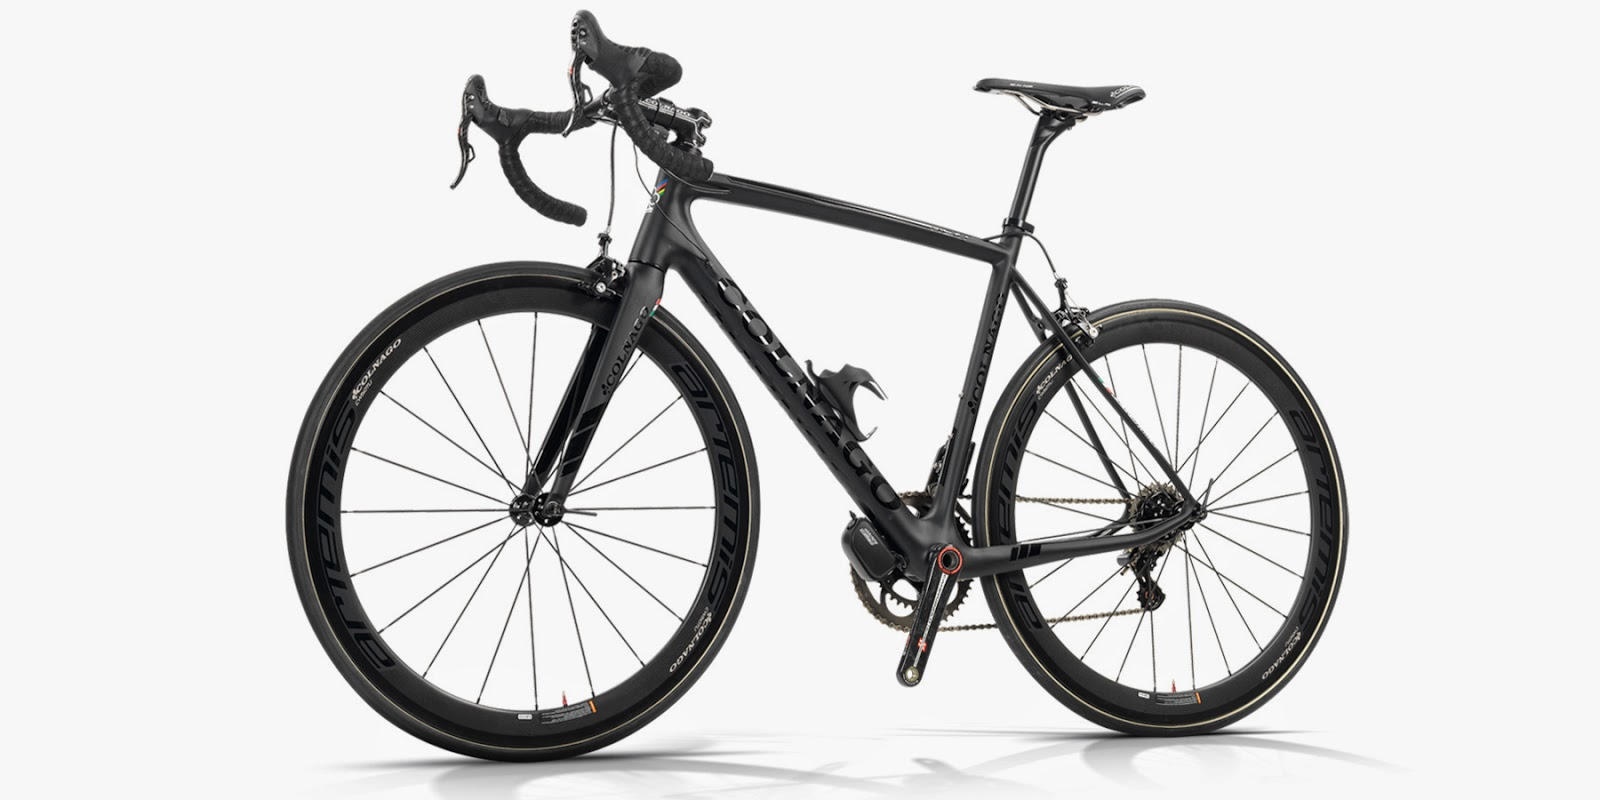 Best Bike Shop In Bakersfield Colnago Cx Zero Disc